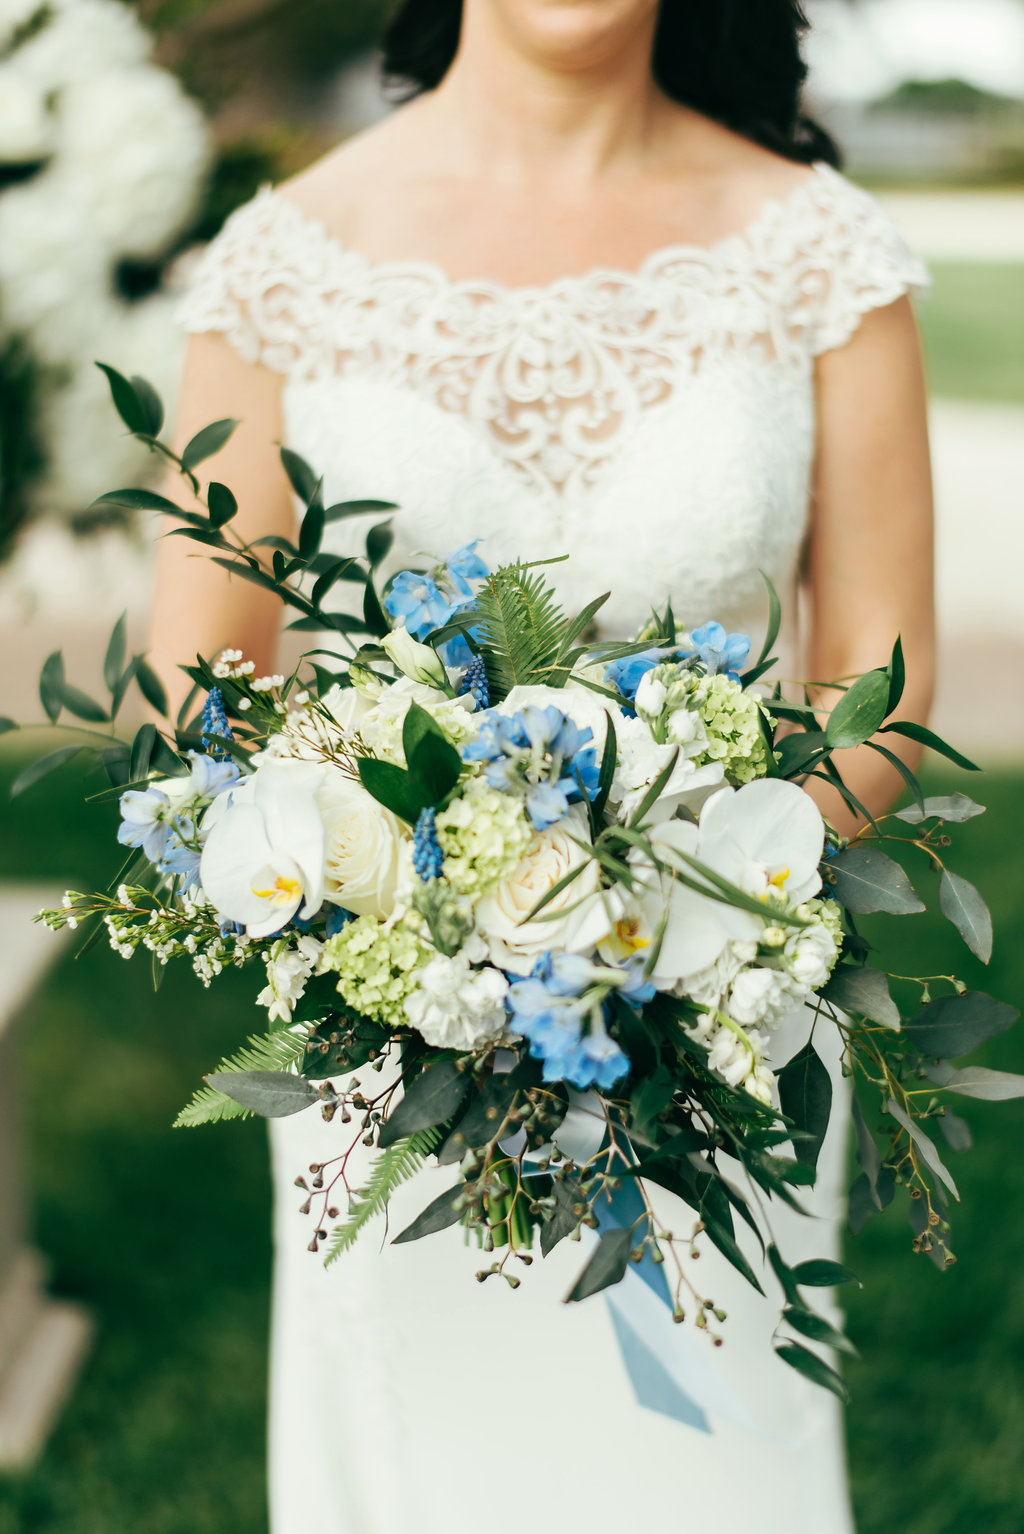 Atelier Ashley Flowers + Woodlawn + Pope Leighhey House + Anna Reynal Photography + DC Weddings + DC Florist + bouquet + dusty blue flowers + bridal